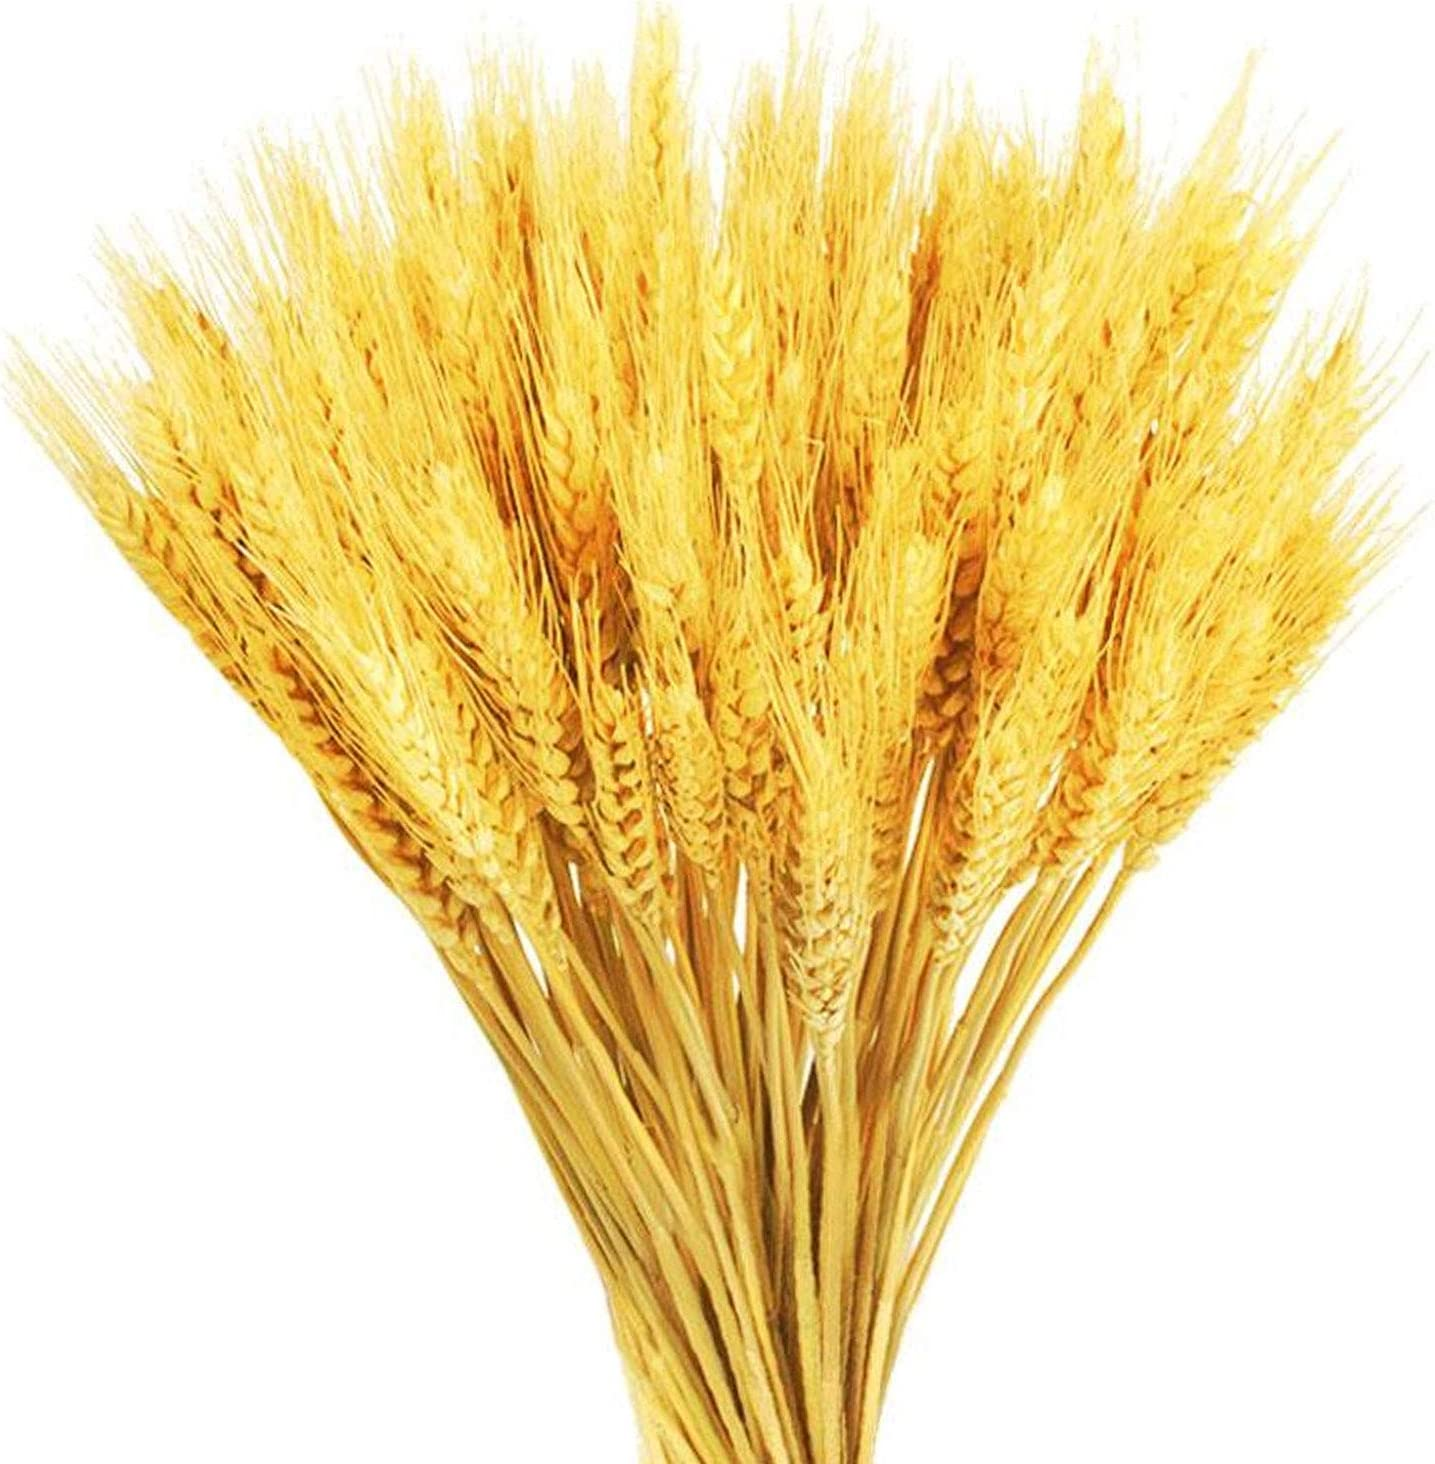 GTIDEA 100 Stems Dried Wheat Stalks Golden Natural Wheat Ears Flowers Fall Wedding Flower Bouquet for Home Farmhouse Party Decor (16.9 Inch)